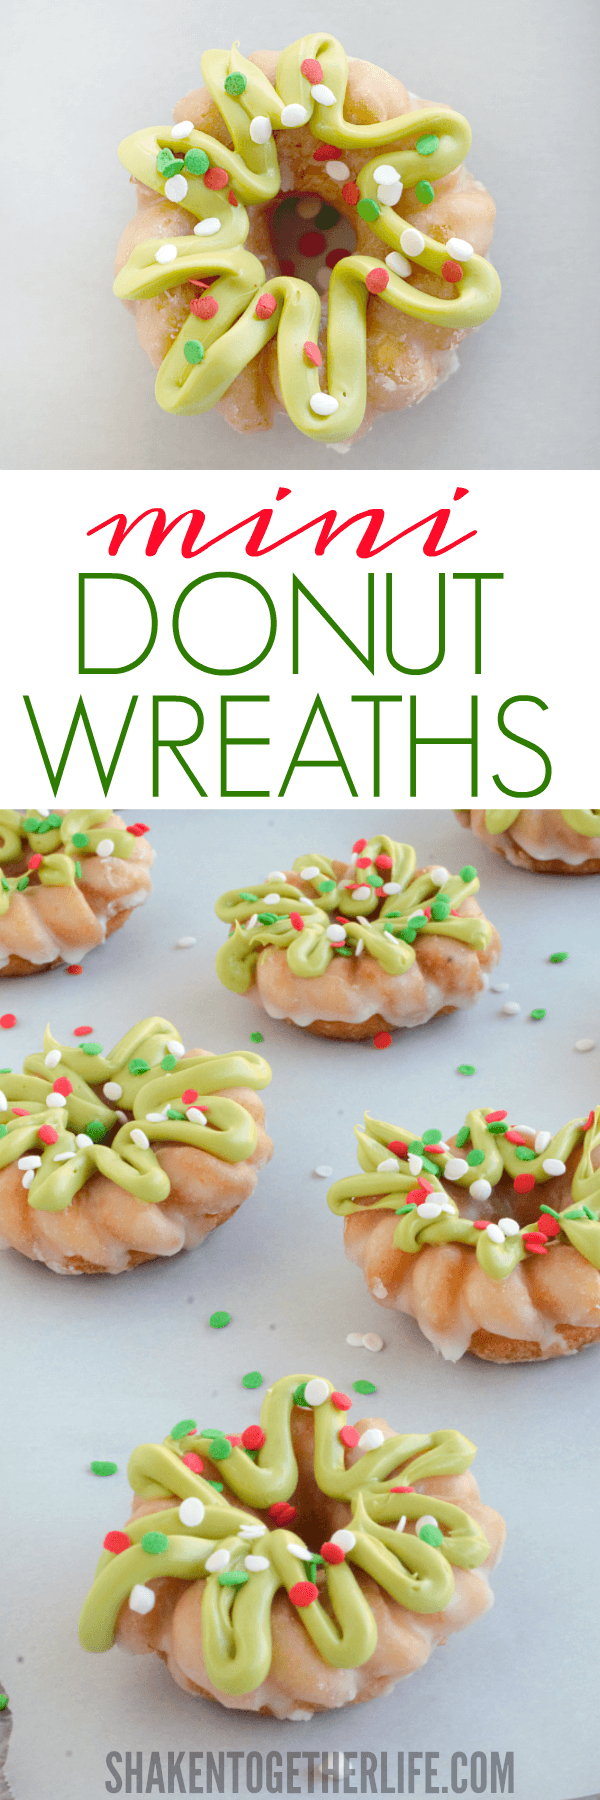 Mini Donut Wreaths are an easy Christmas breakfast idea - great for class parties, breakfast play dates or to package up for your mail carrier!